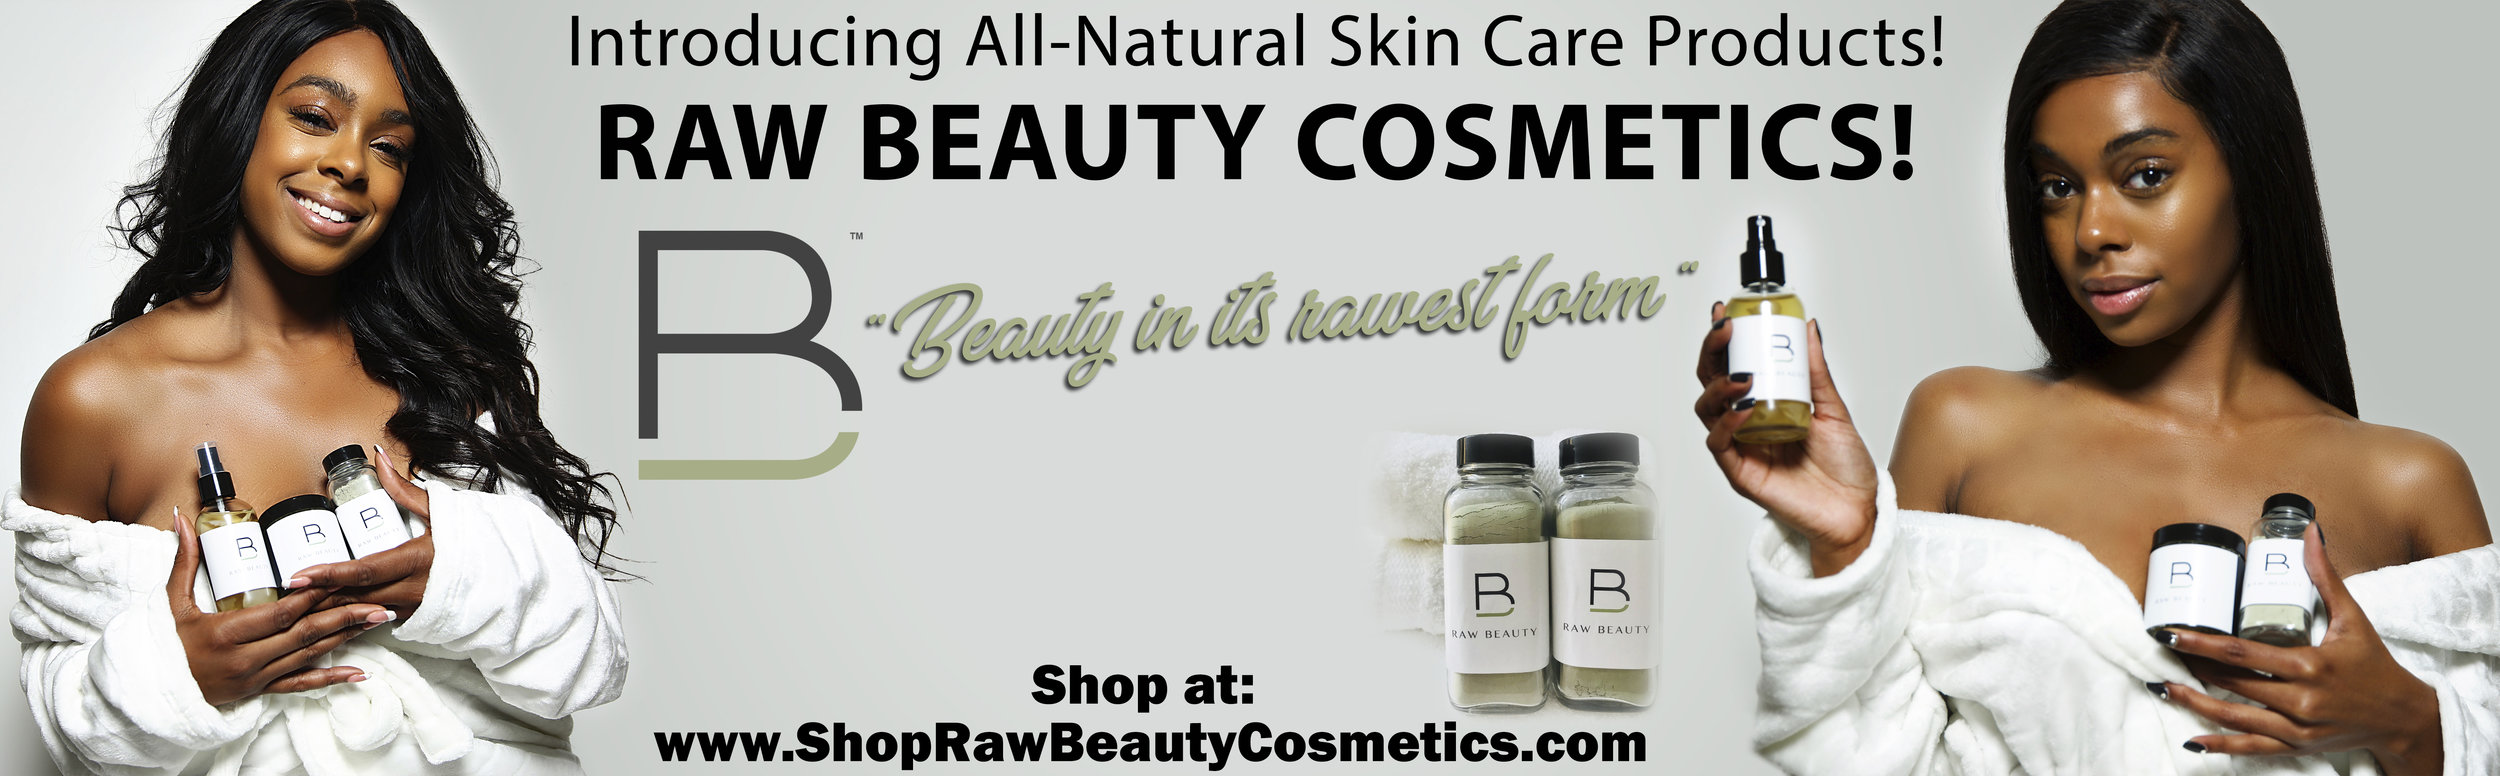 Raw Beauty Cosmetics vr 2.jpg